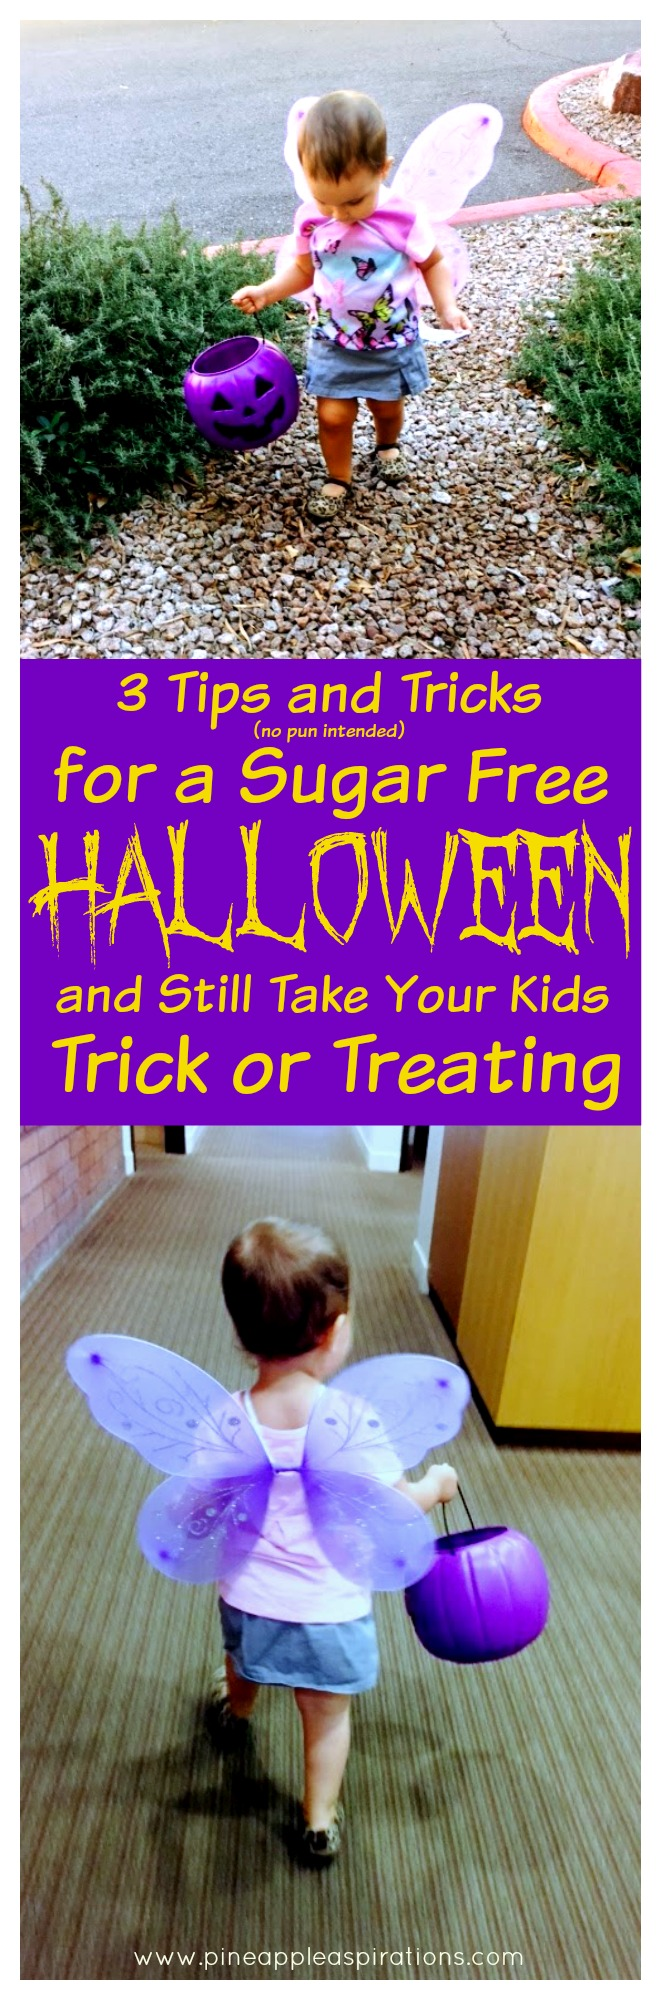 3 Tips and Tricks for a Sugar Free Halloween and Still go Trick or Treating